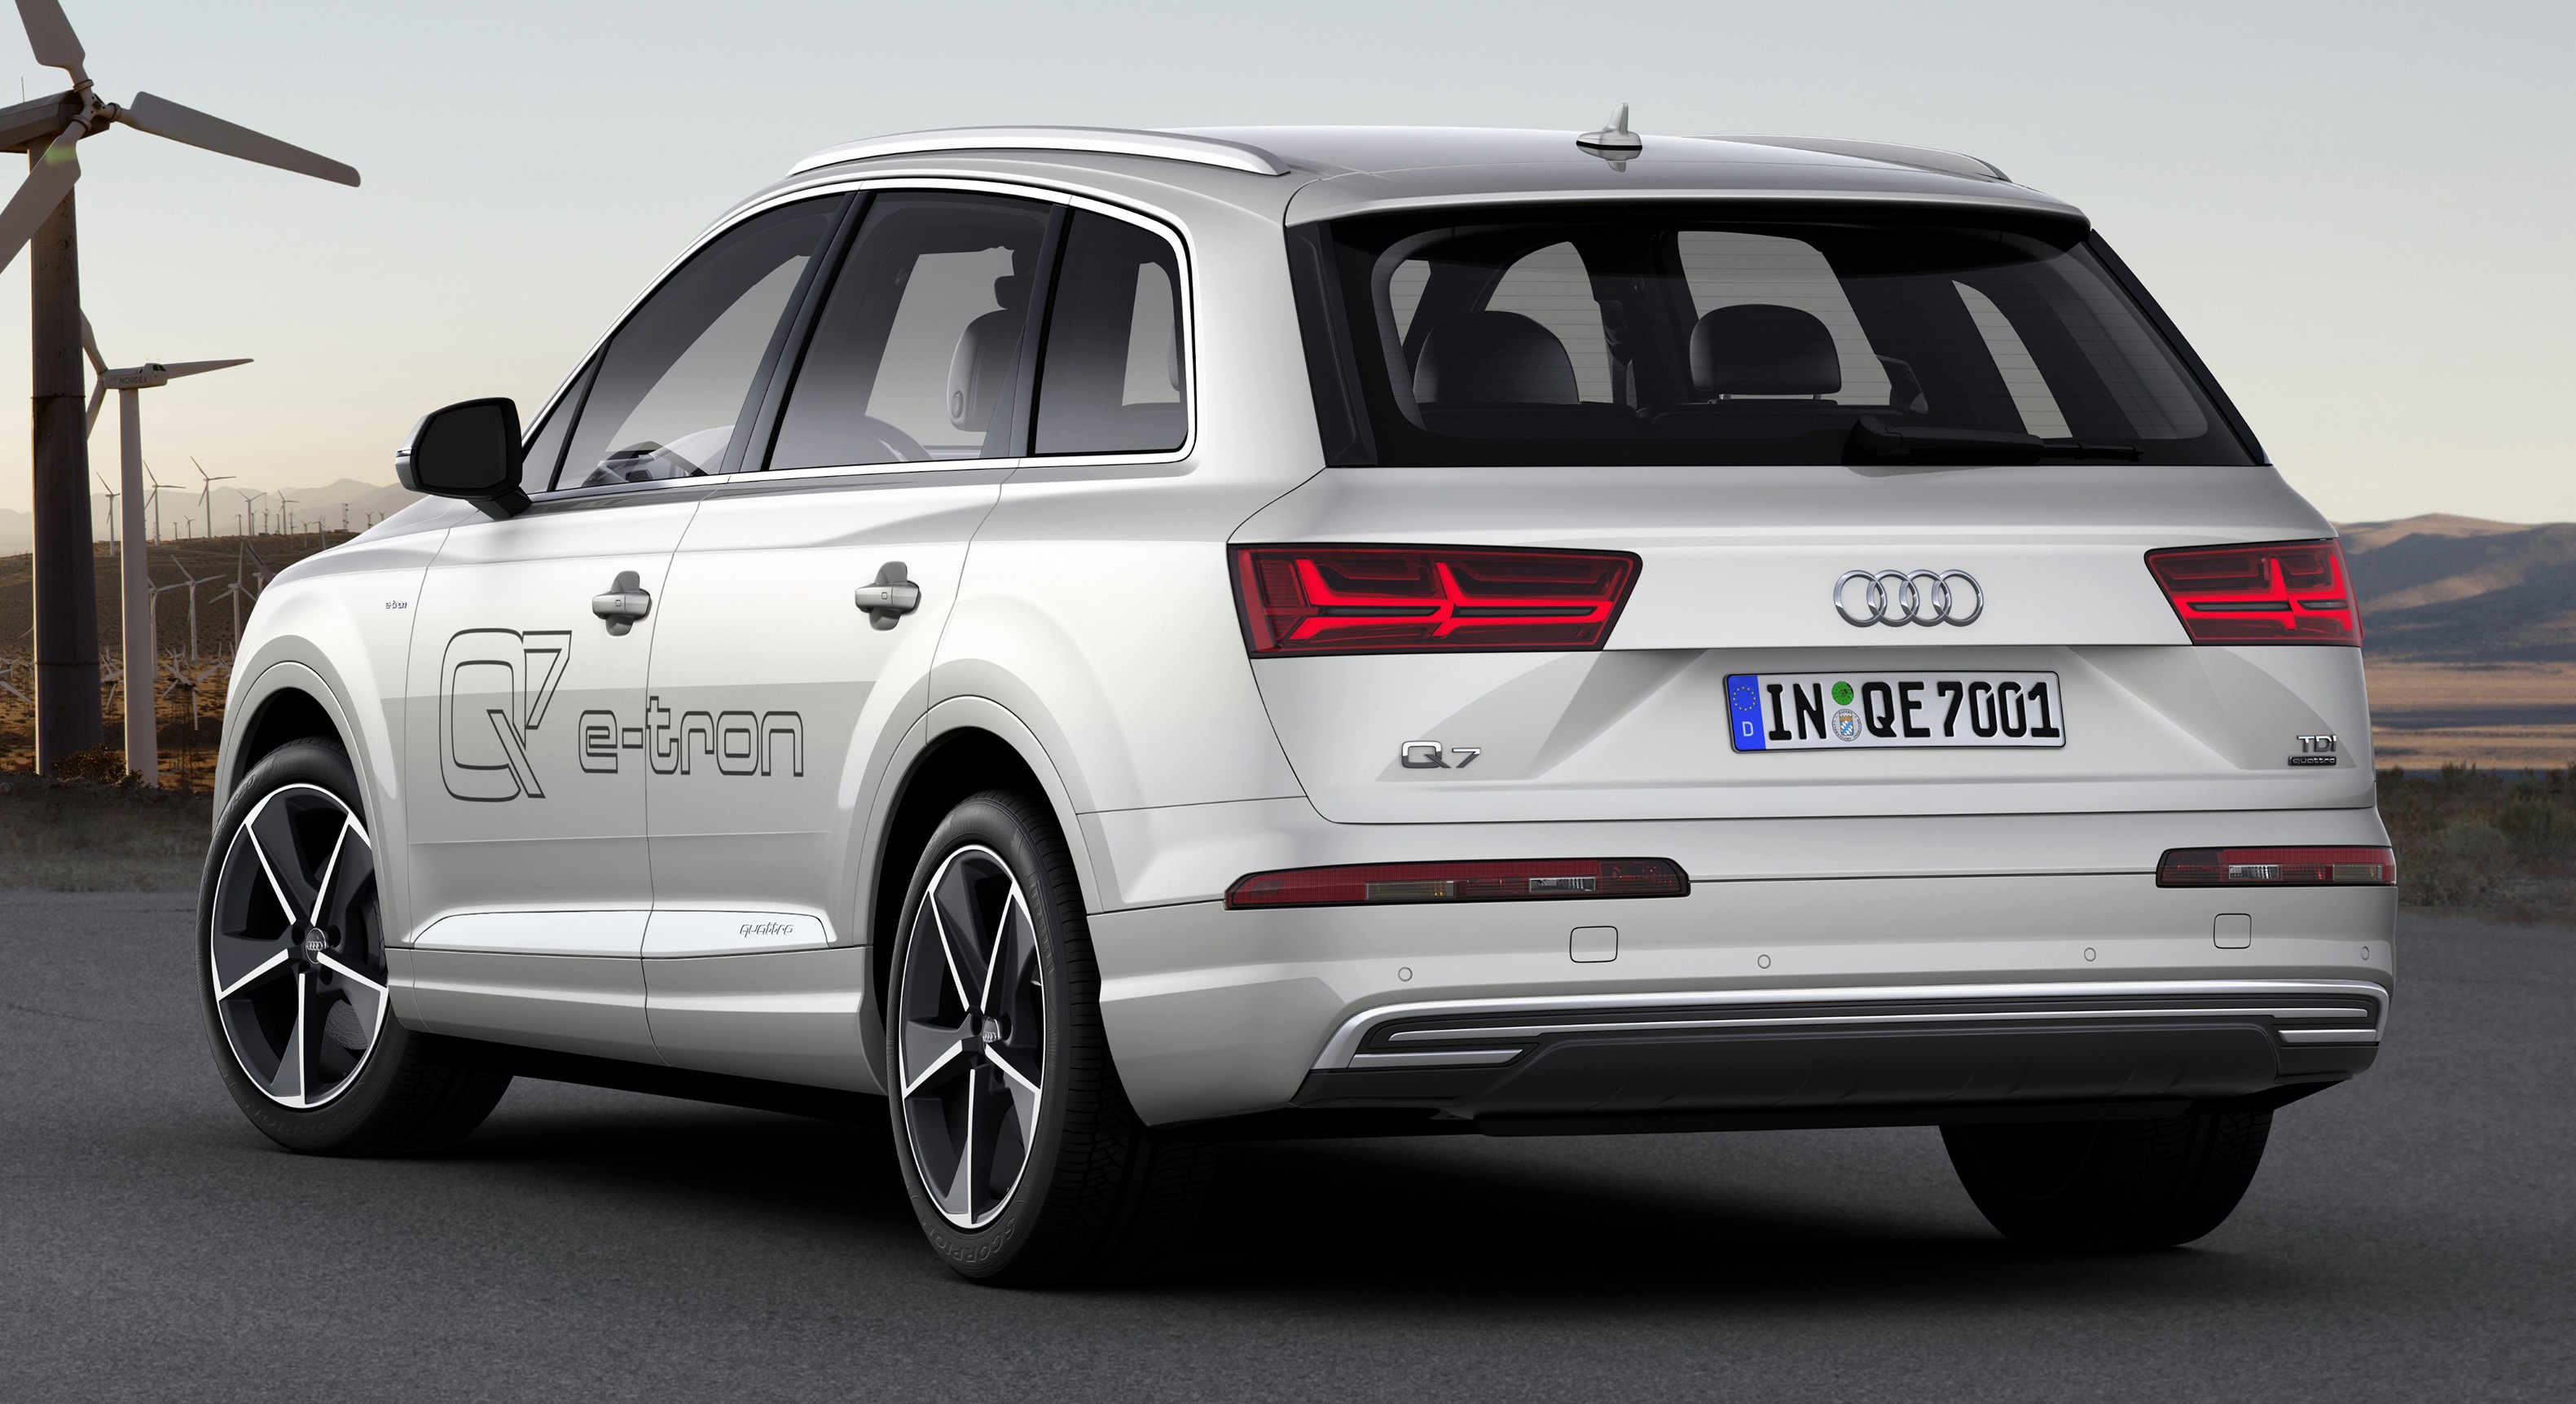 Hybrid version of the Audi Q7 e-tron 2017 model year 76